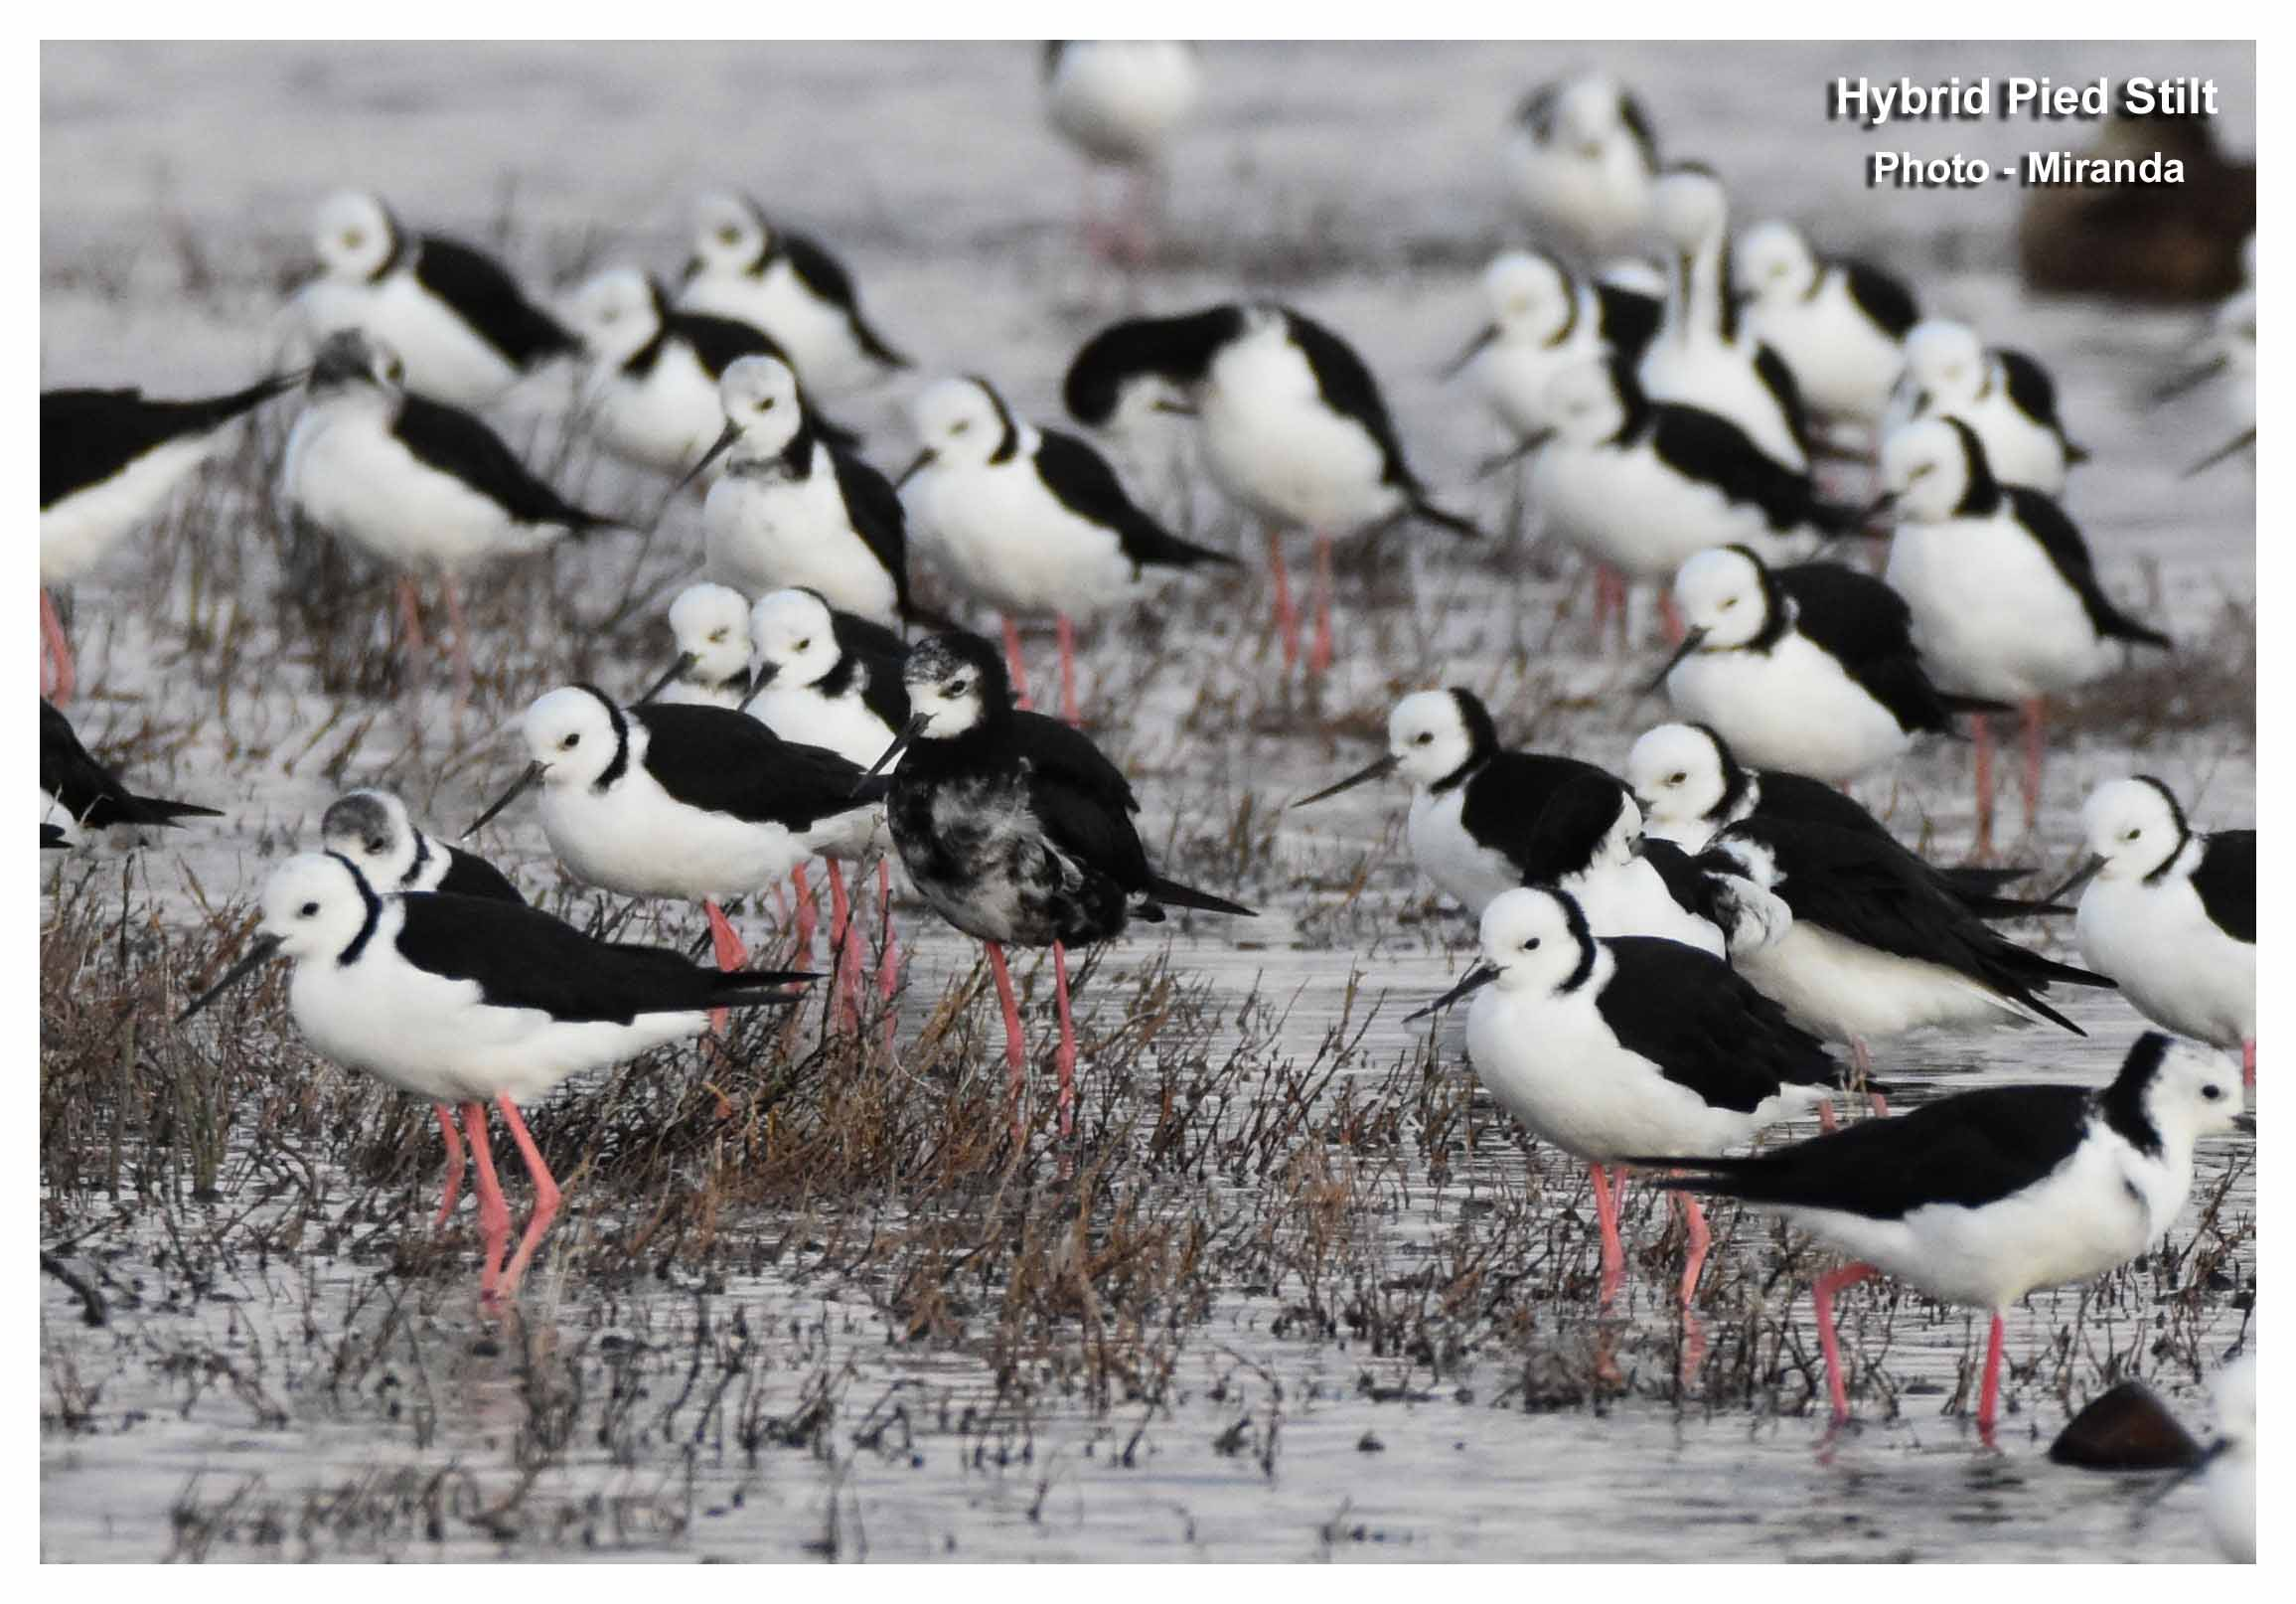 13-hy-pied-stilt-ft-r